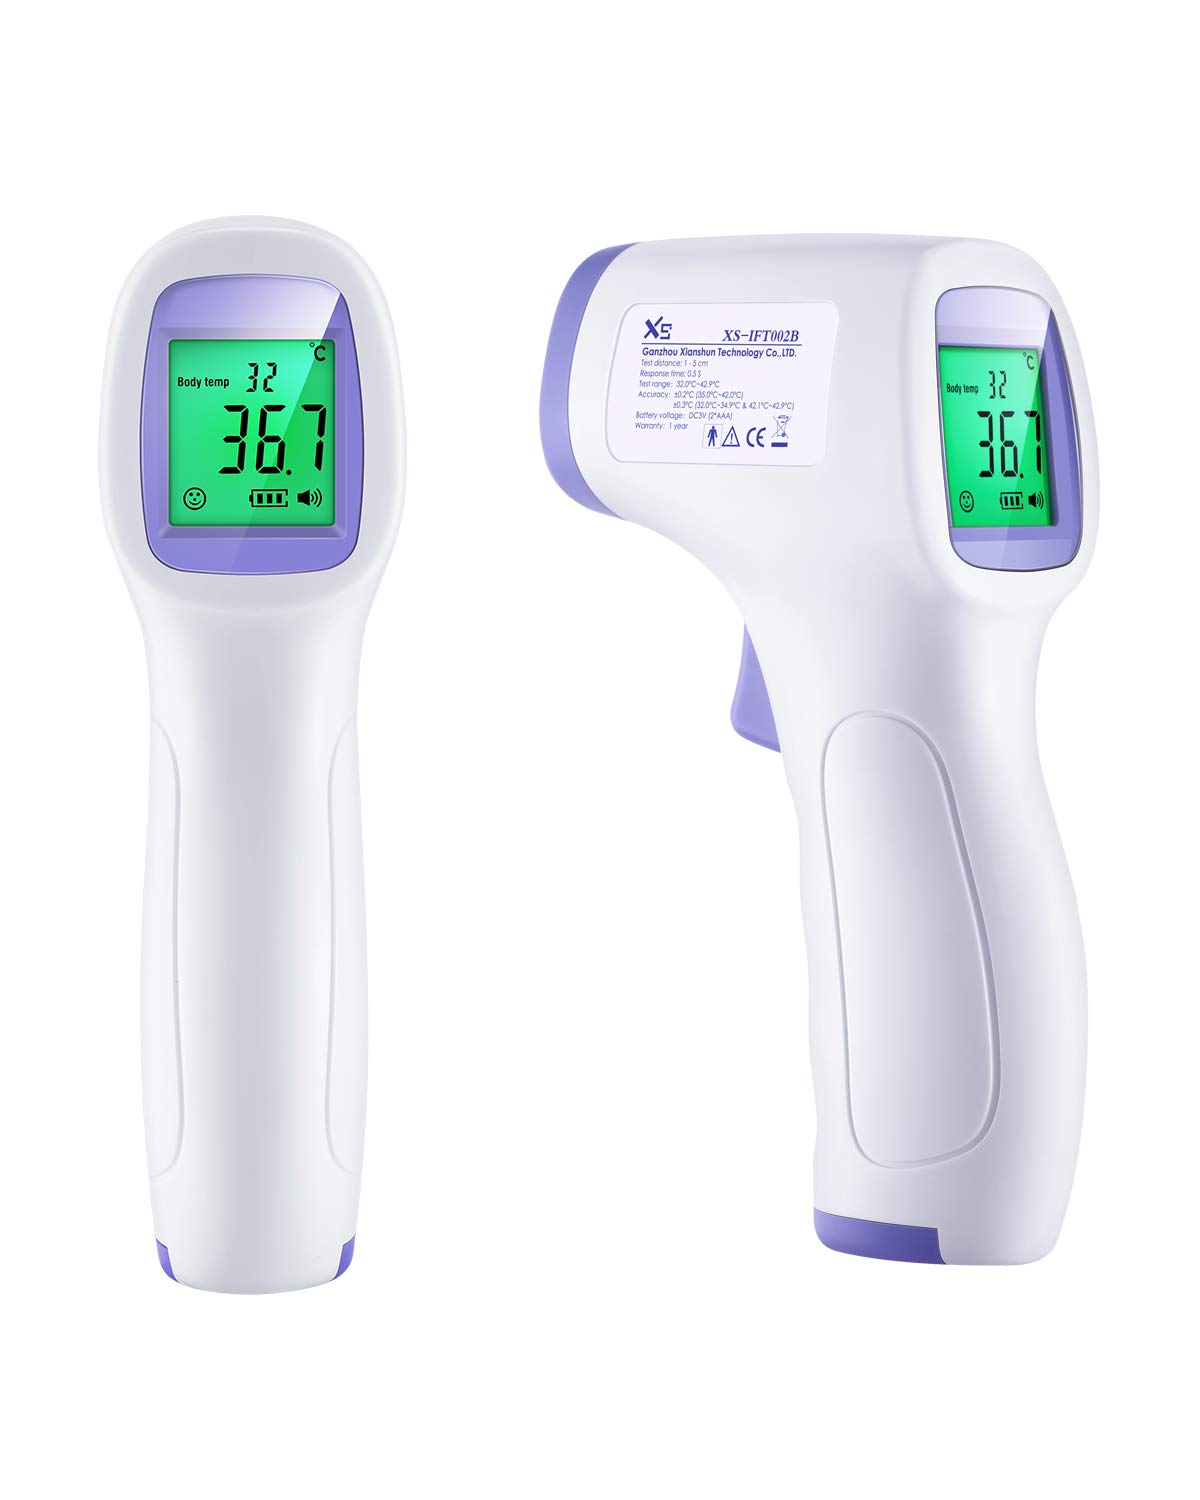 Digital Medical Thermometer Beeper Fever Alarm Auto Off LCD C reading